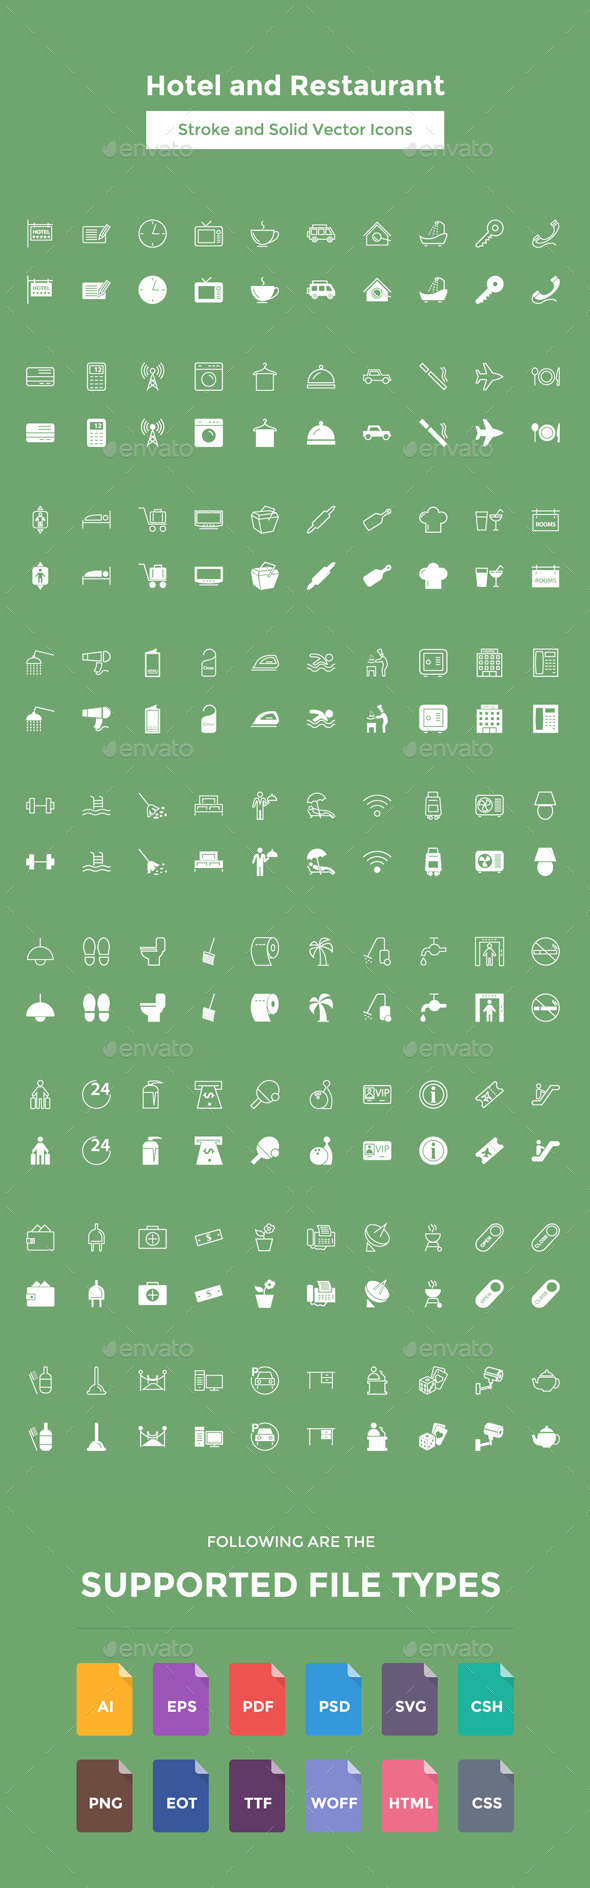 Hotel and Restaurant Vector Icons - Icons